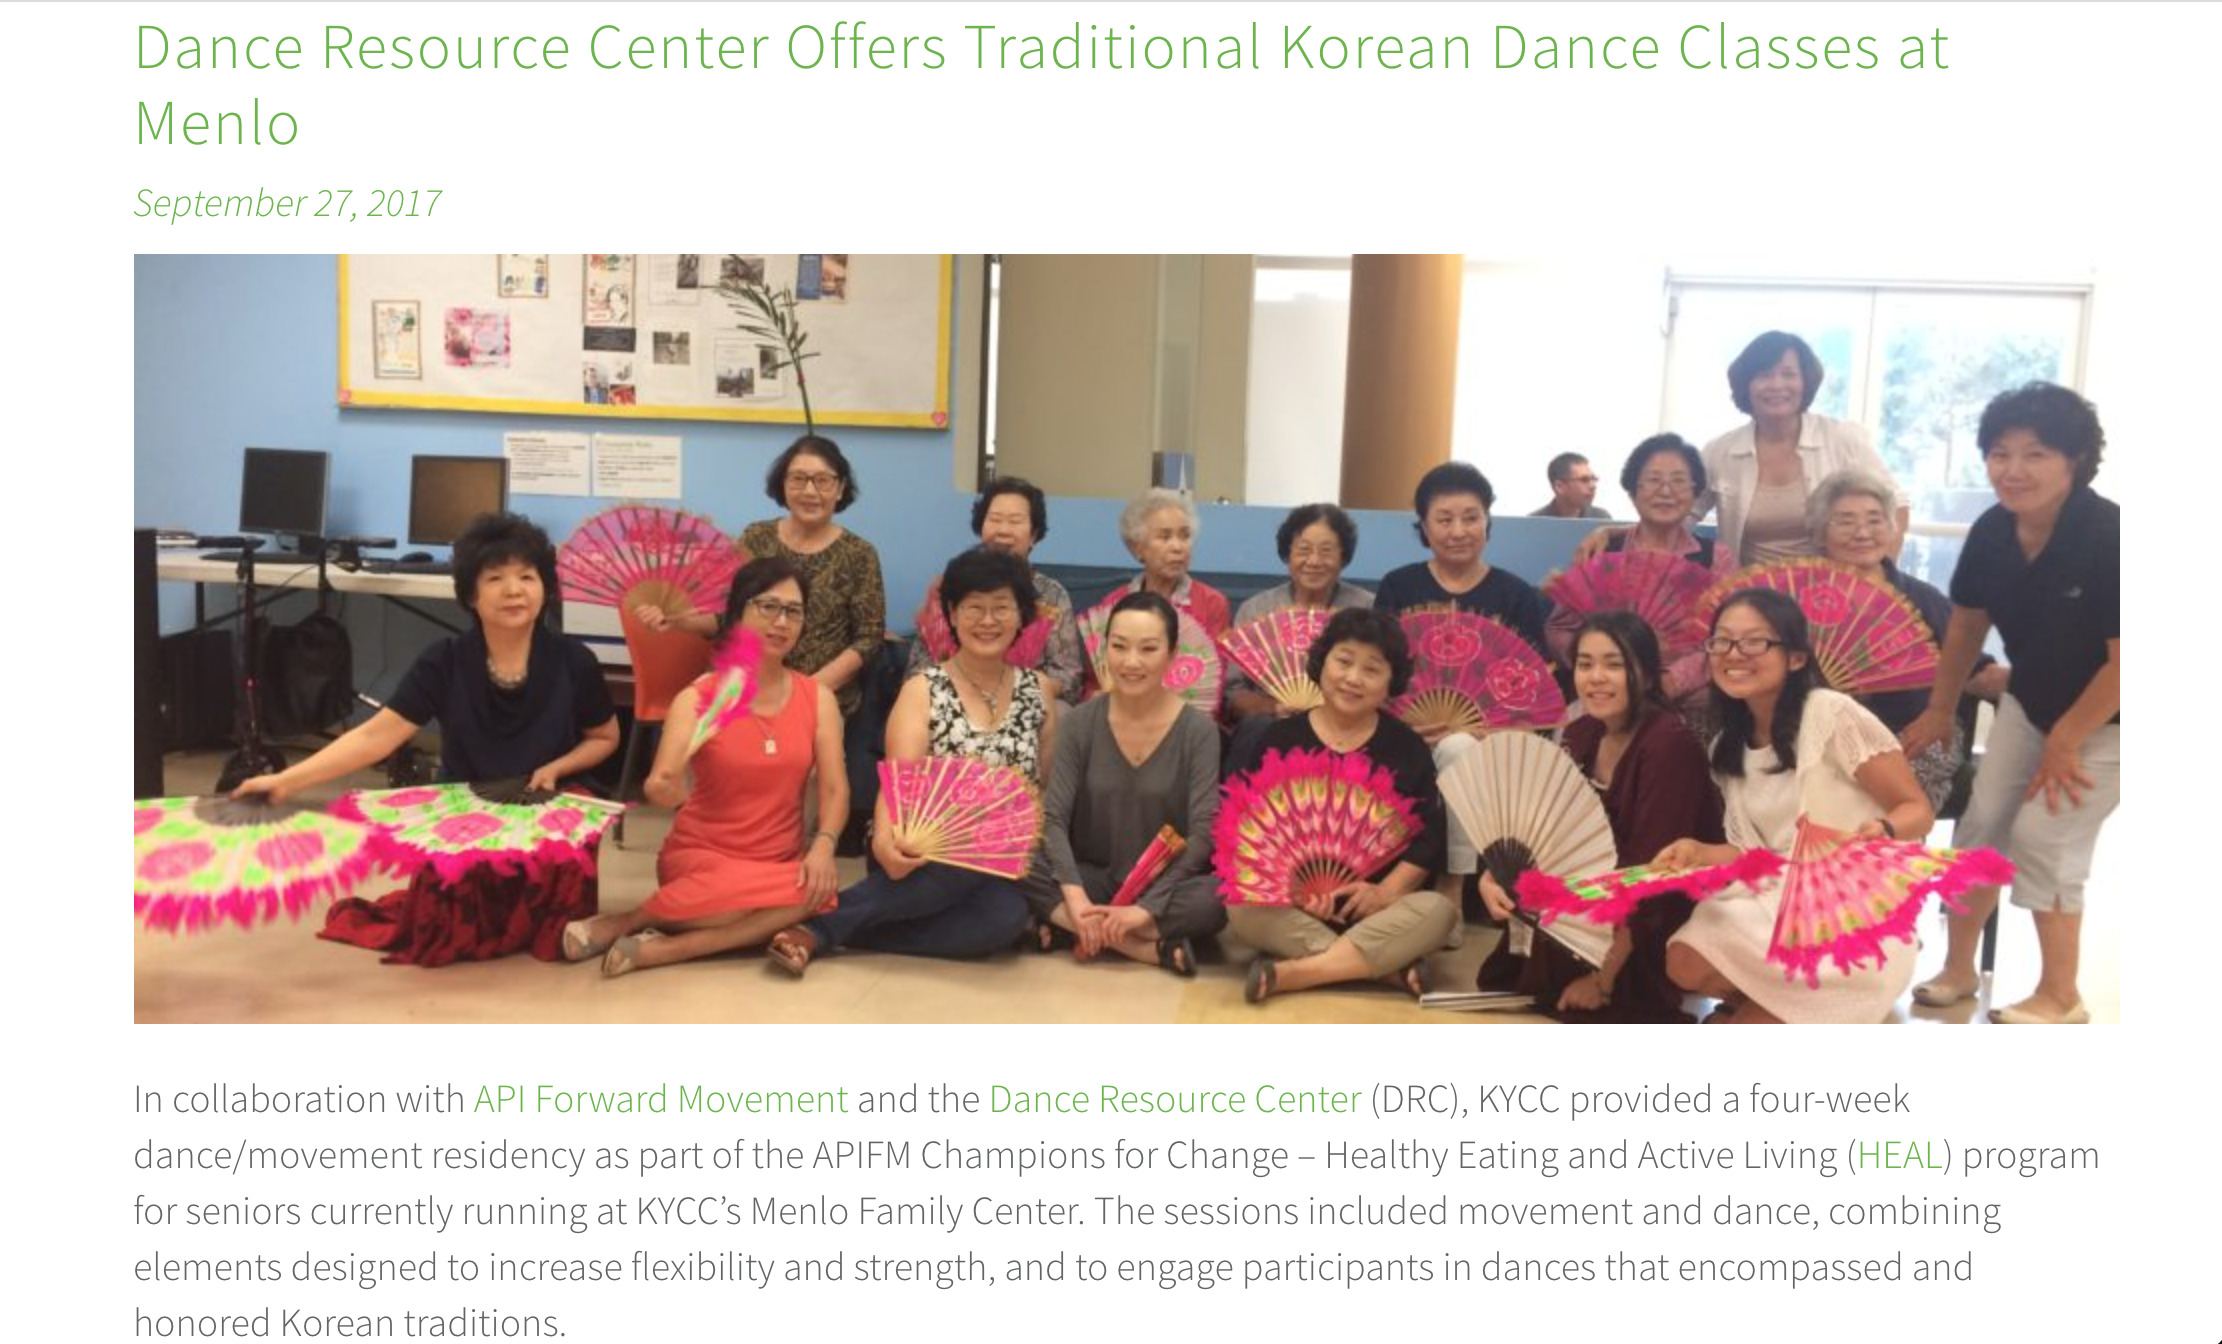 Dance Resource Center offers traditional Korean dance classes at Menlo article.